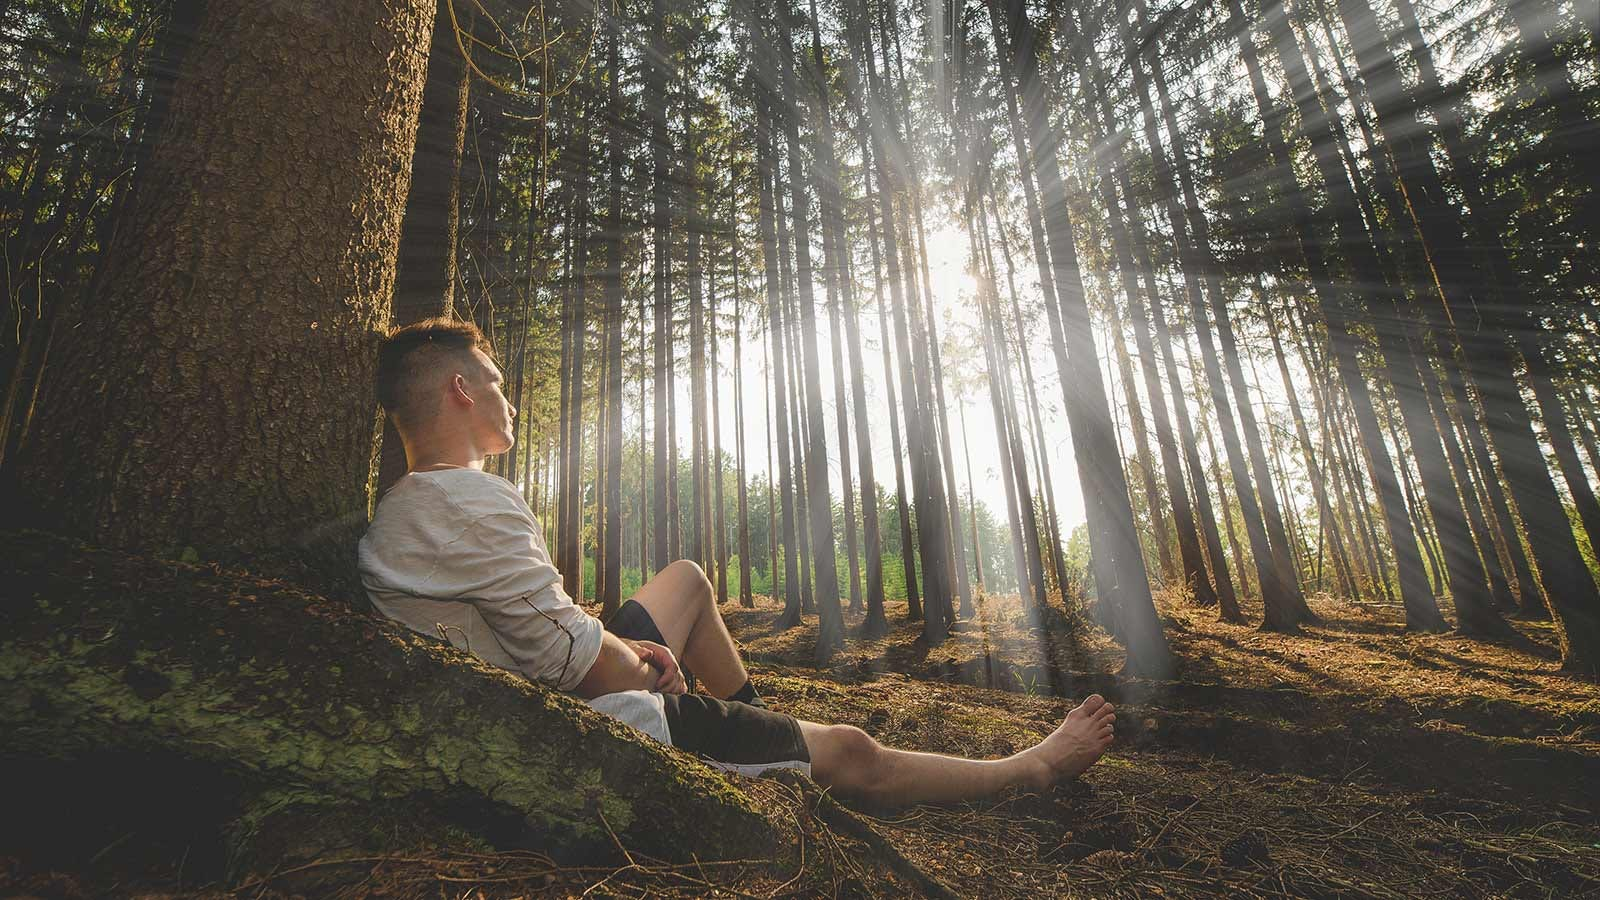 Man leaning against a tree in a forest while the sunshine streams through the trees.